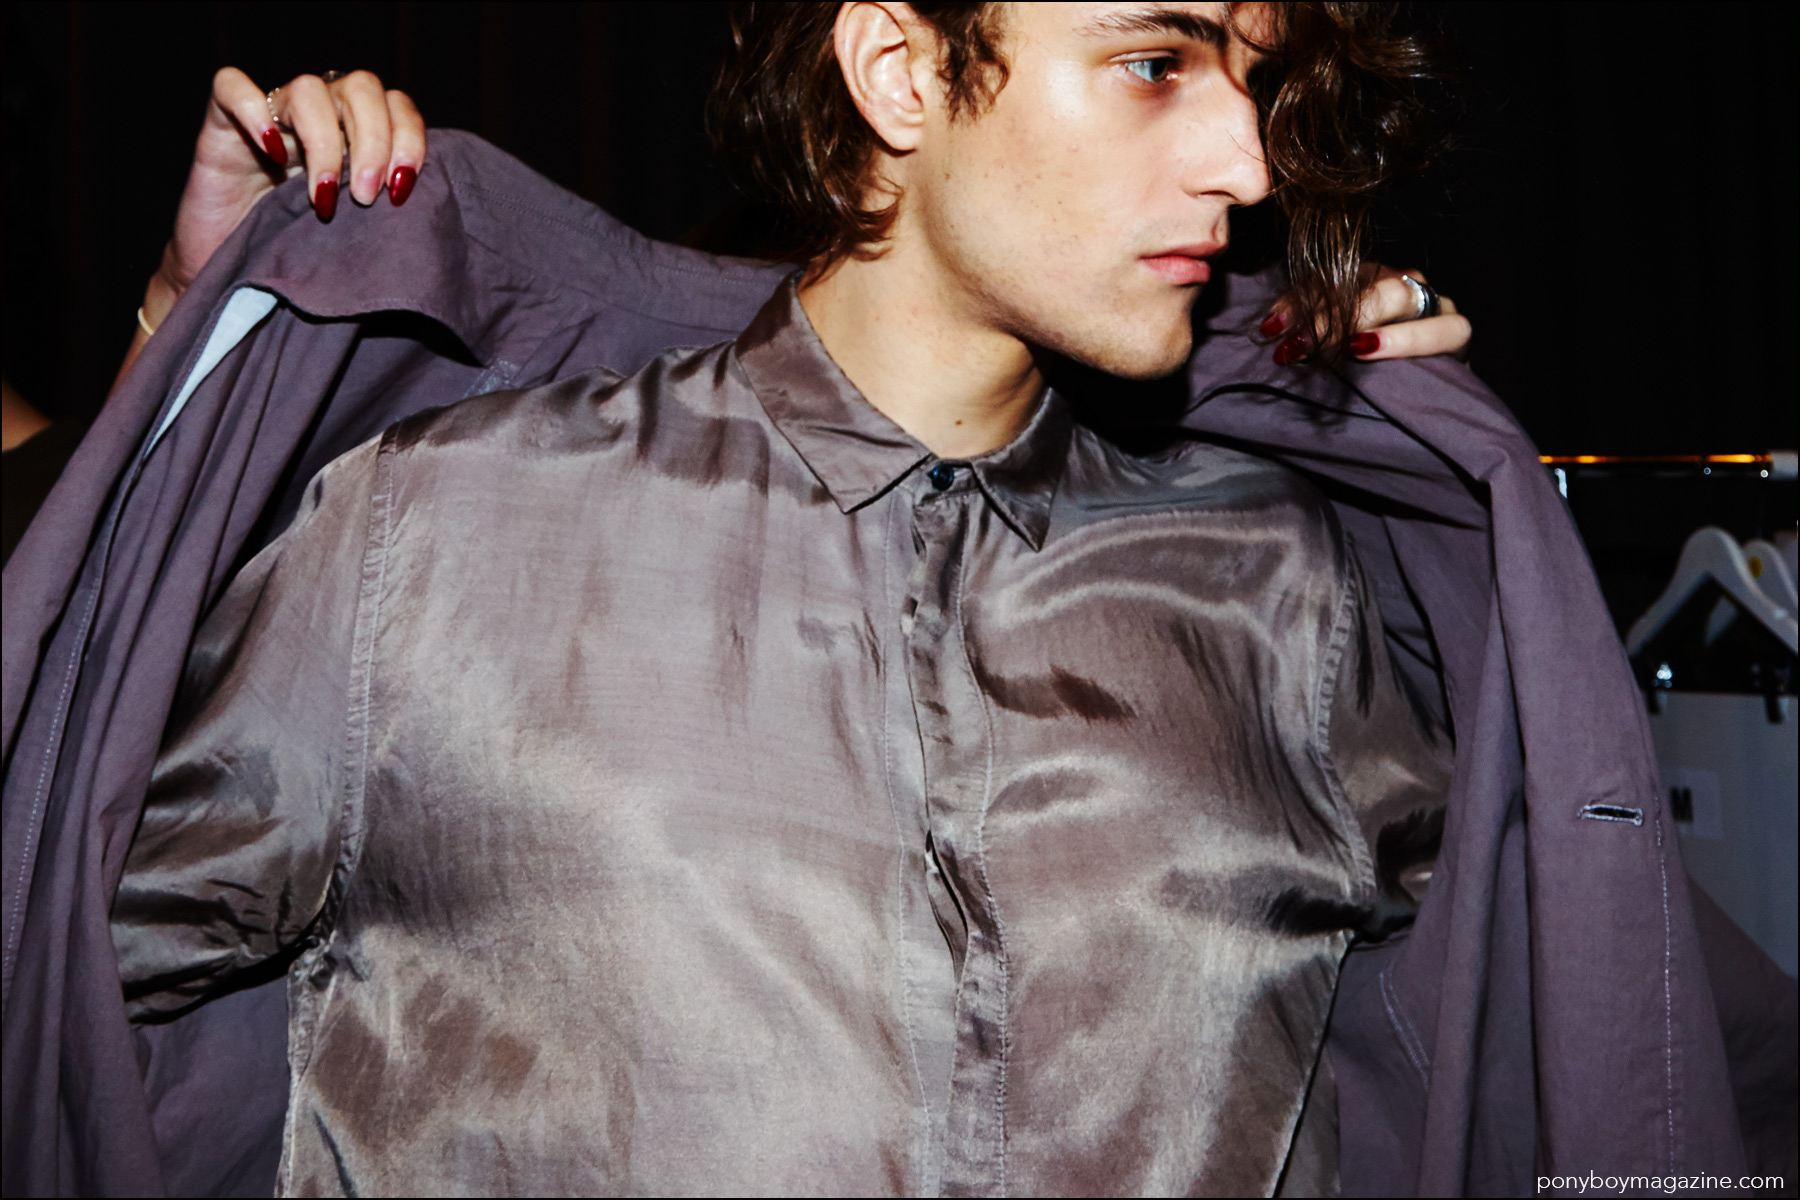 A close-up shot of a male model getting dressed backstage at the Robert Geller Spring/Summer 2017 menswear show. Photography by Alexander Thompson for Ponyboy magazine NY.